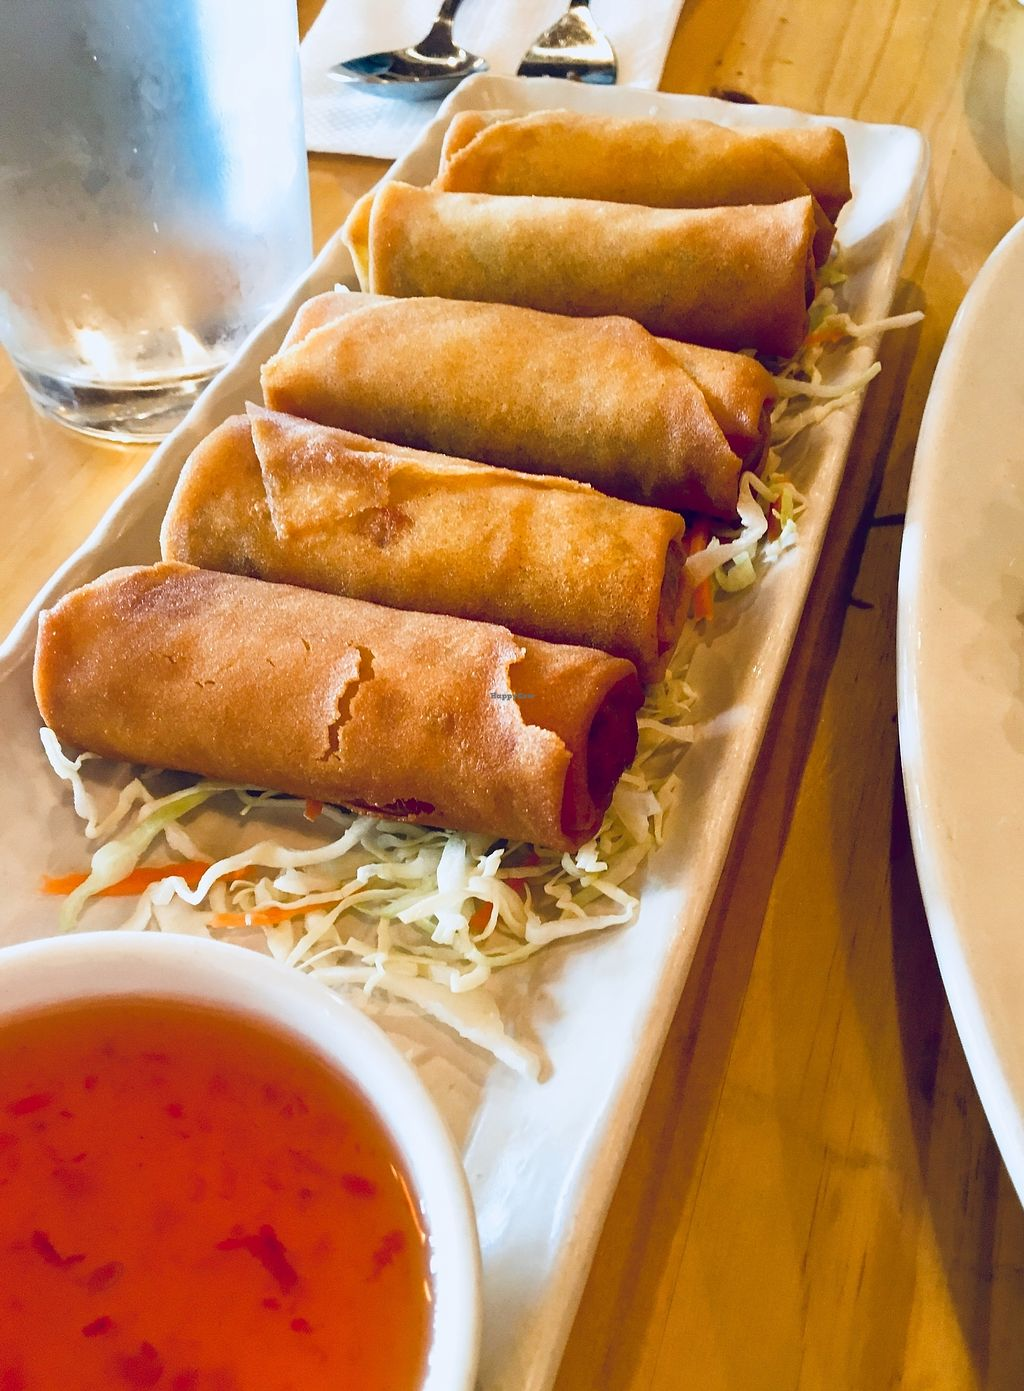 """Photo of Line Thai  by <a href=""""/members/profile/Clean%26Green"""">Clean&Green</a> <br/>Vegetable rolls <br/> January 4, 2018  - <a href='/contact/abuse/image/108573/343006'>Report</a>"""